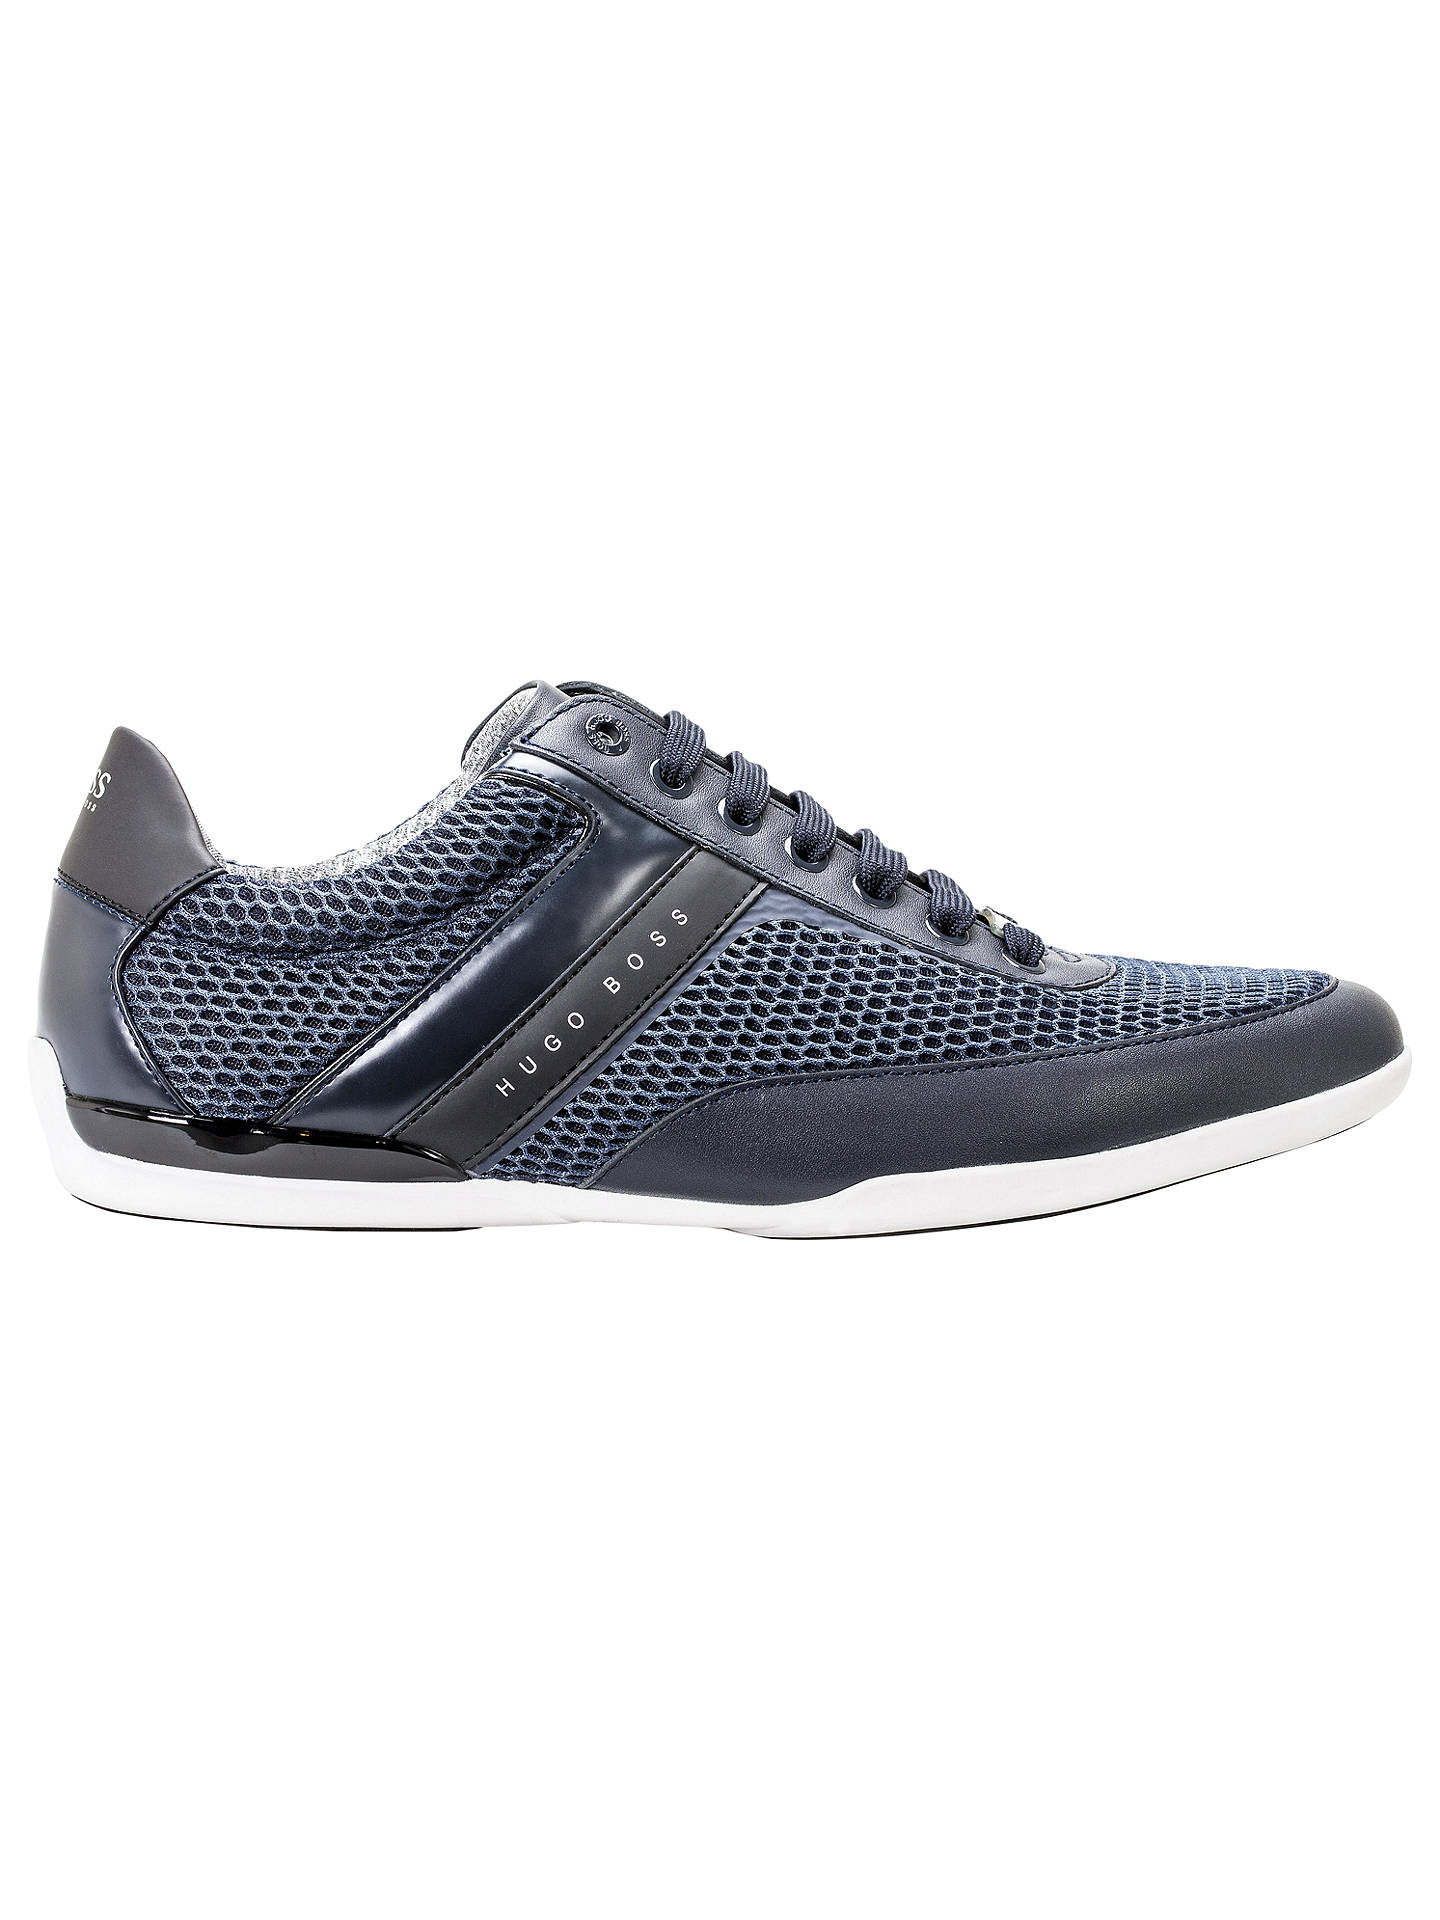 d7a71b0c9 Buy HUGO BOSS Space Trainers, Navy, 7 Online at johnlewis.com